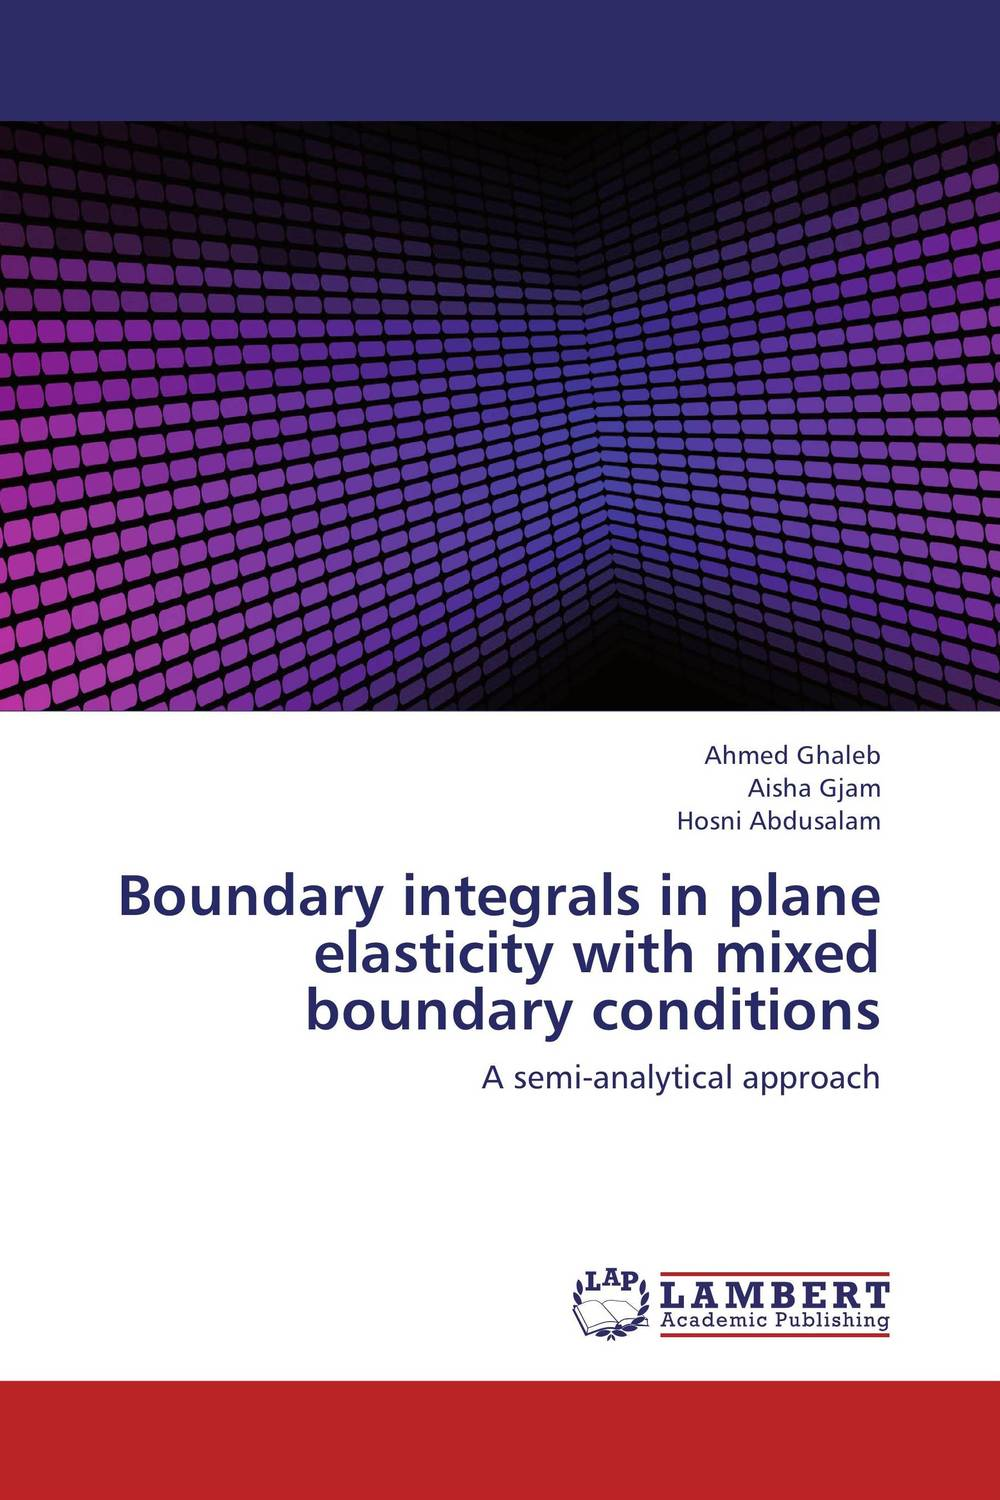 Boundary integrals in plane elasticity with mixed boundary conditions arindam ghosh hazra studies on boundary conditions and noncommutativity in string theory